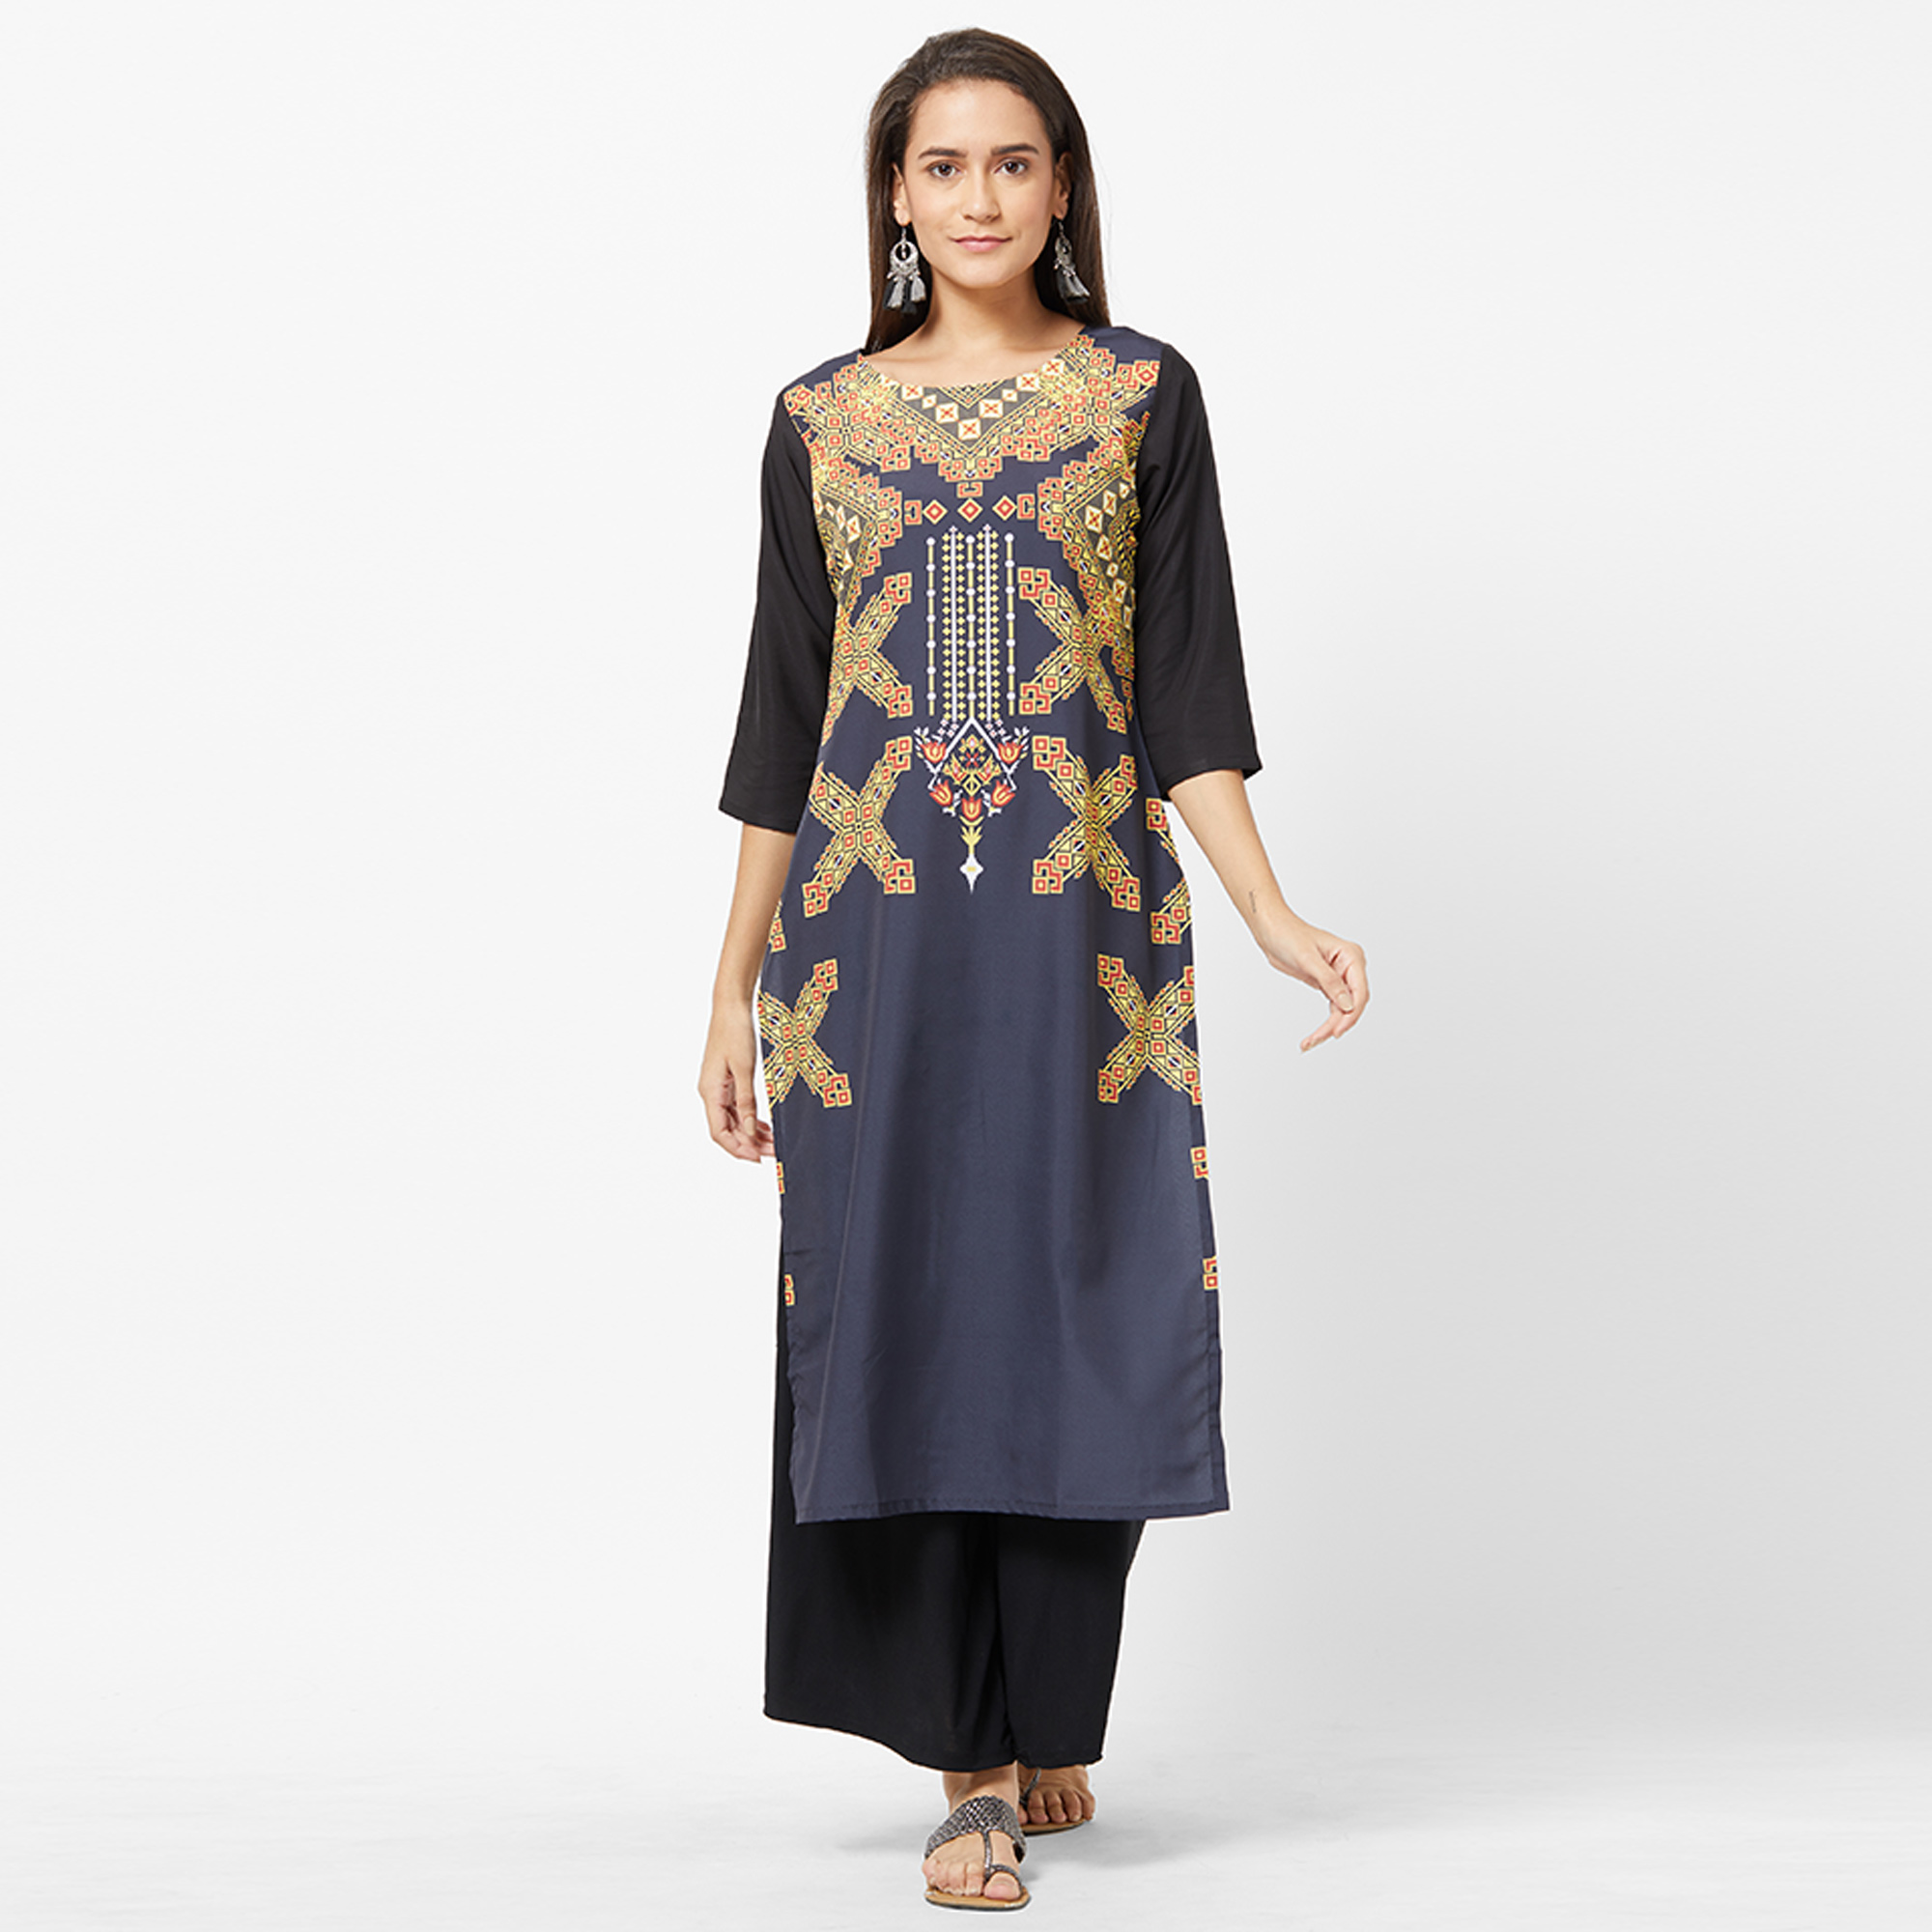 Ravishing Navy Blue Colored Casual Printed Crepe Kurti